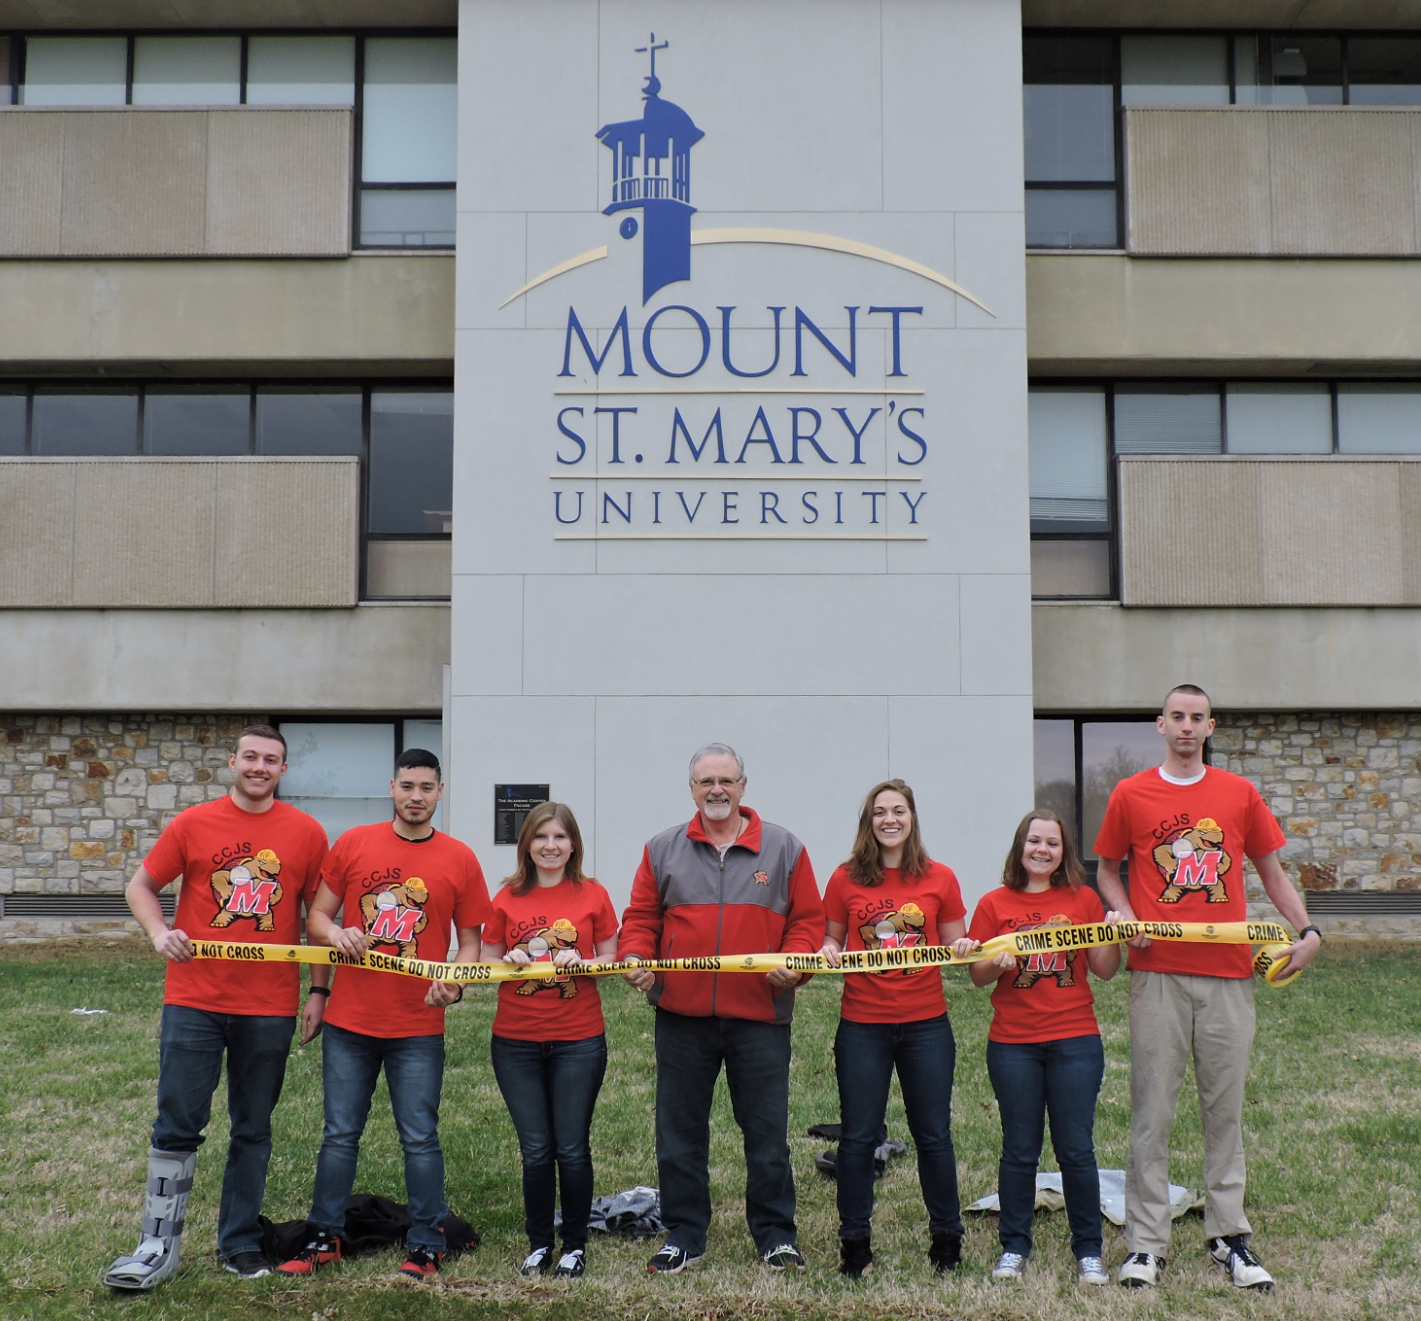 (L to R) CSI Terp #2- Patrick Hannigan, Andres Hernandez, Kaitlyn Asbury; Professor Tom Mauriello; and CSI Terp #1 – Emily Toth, Bailey Jean Pendergast, and Nathan